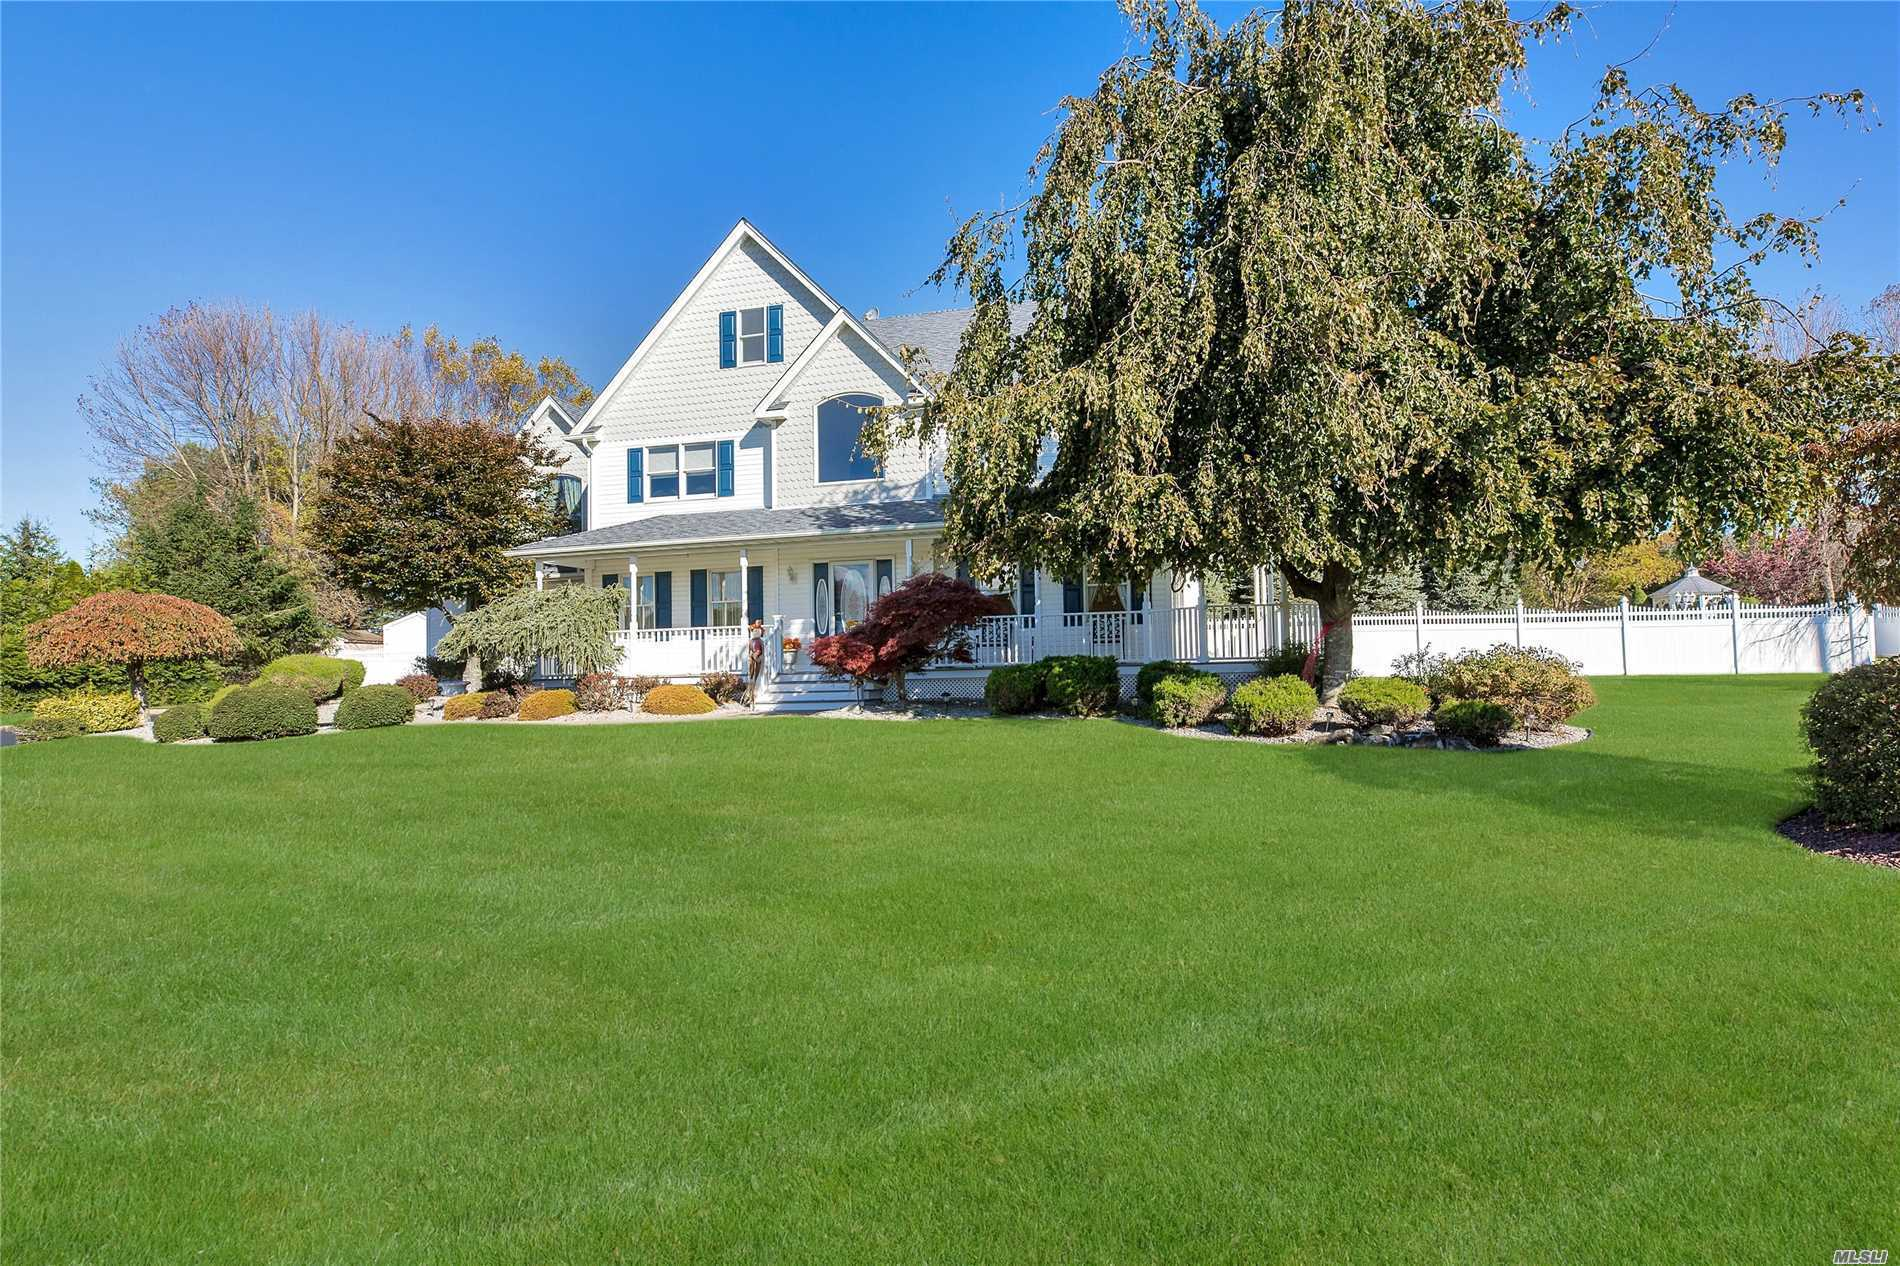 Nestled In A Cul-De-Sac, This Beautiful 3400 Sf Home Sits On Over 1/2 Acre With Lush Landscape And Saltwater Igp!  Meticulously Maintained And Updated, Offering 4 Bedrooms, 2.5 Baths, Hardwood Floors, Anderson Windows, Cvac, Full Basement W/Ose, 2-Car Garage With 9-Ft Wide Doors, Front Covered Porch And Fully-Fenced Yard! Move Right In And Enjoy All This Home And Location Have To Offer!